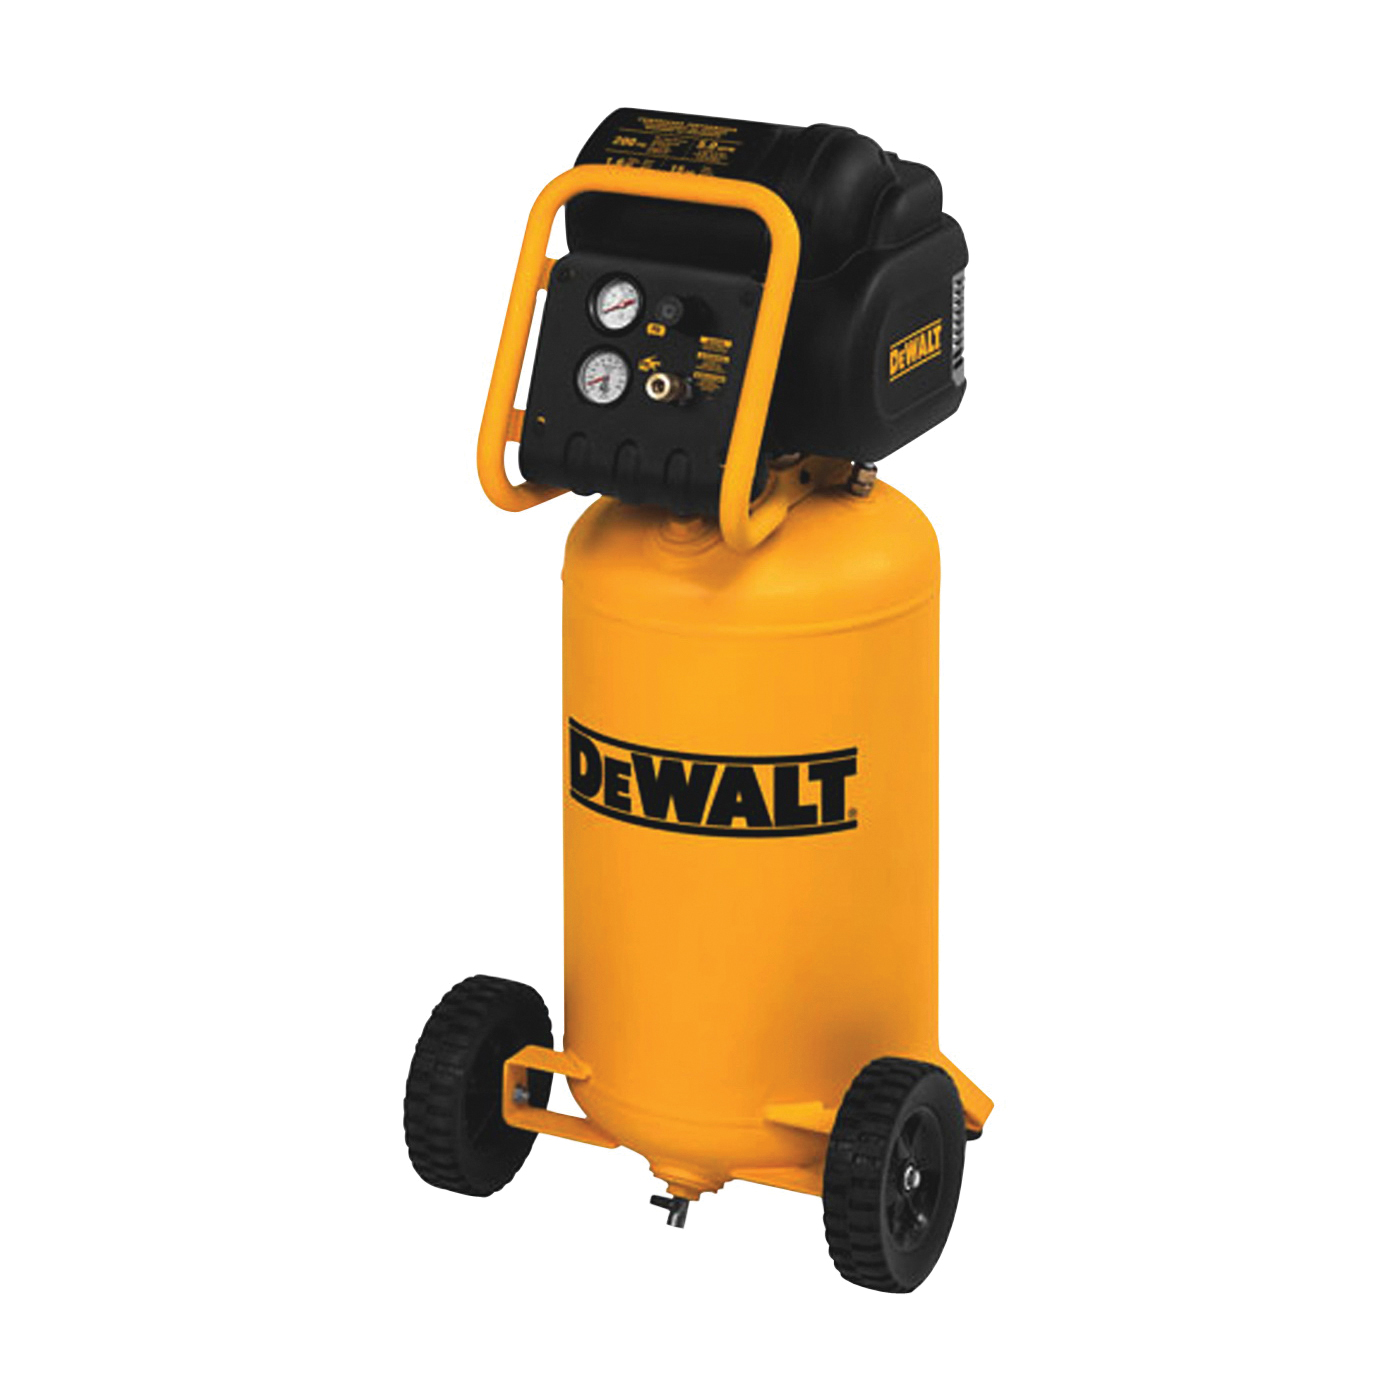 Picture of DeWALT D55168 Portable Workshop Air Compressor, 15 gal Tank, 1.6 hp, 120 V, 200 psi Pressure, 5 cfm Air